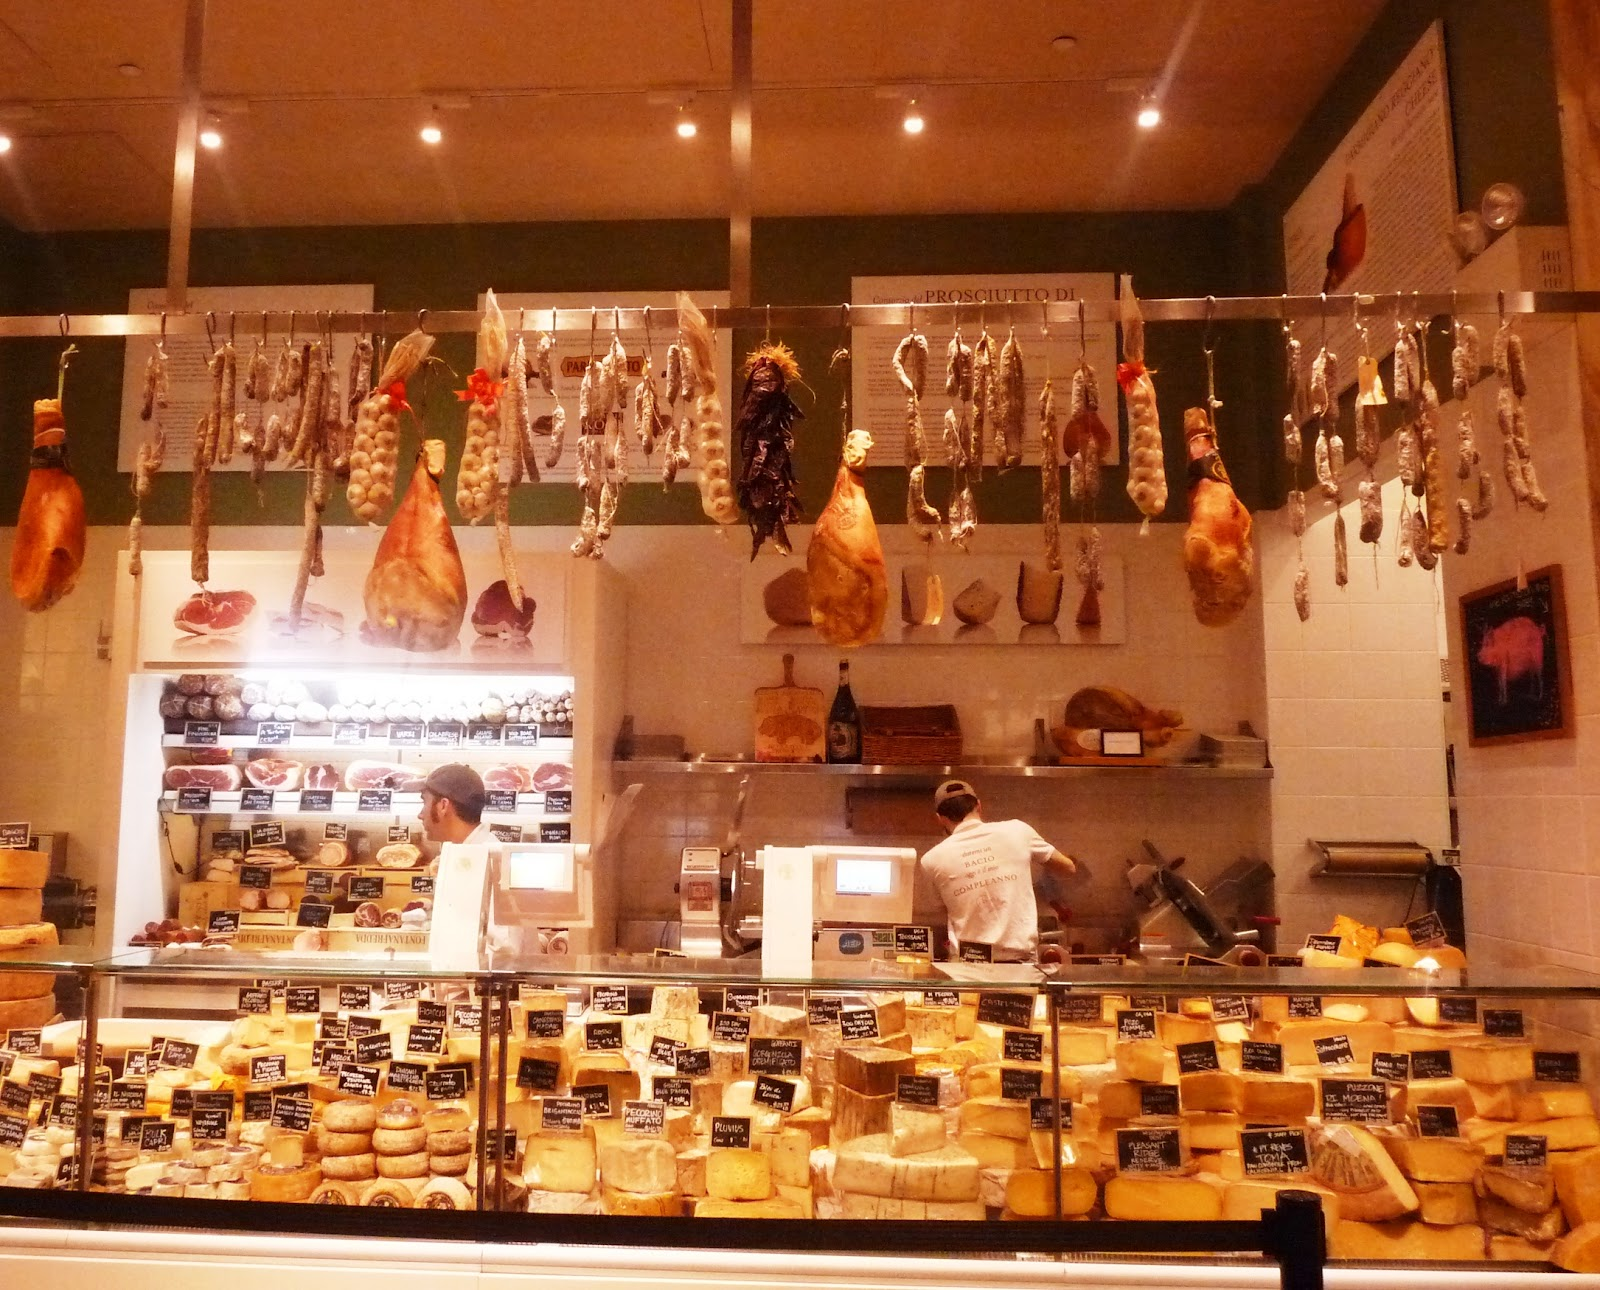 Me, Myself and NYC: Eataly - a must go food destination in NYC